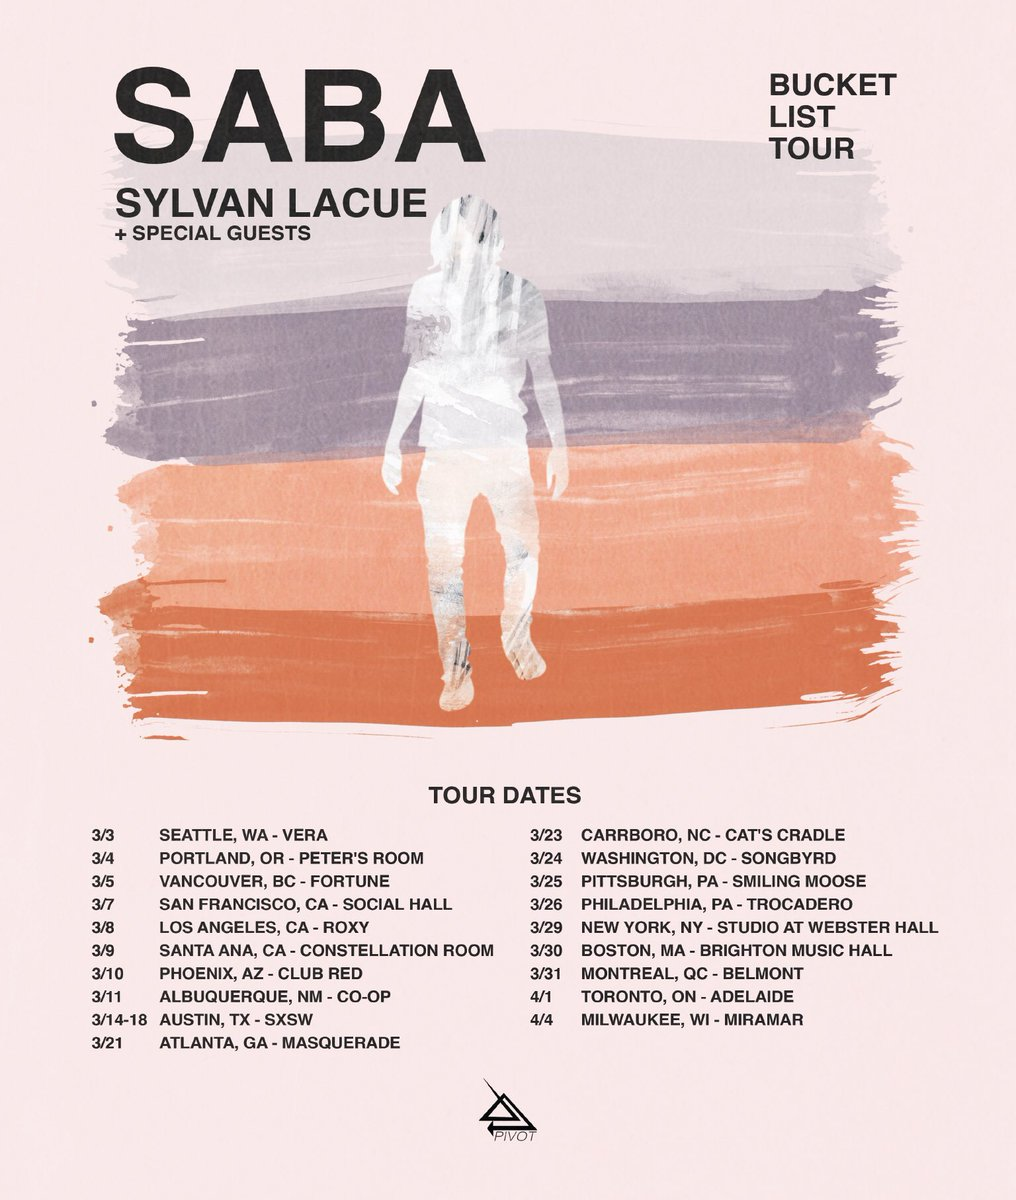 Saba-BucketListTour-Flyer